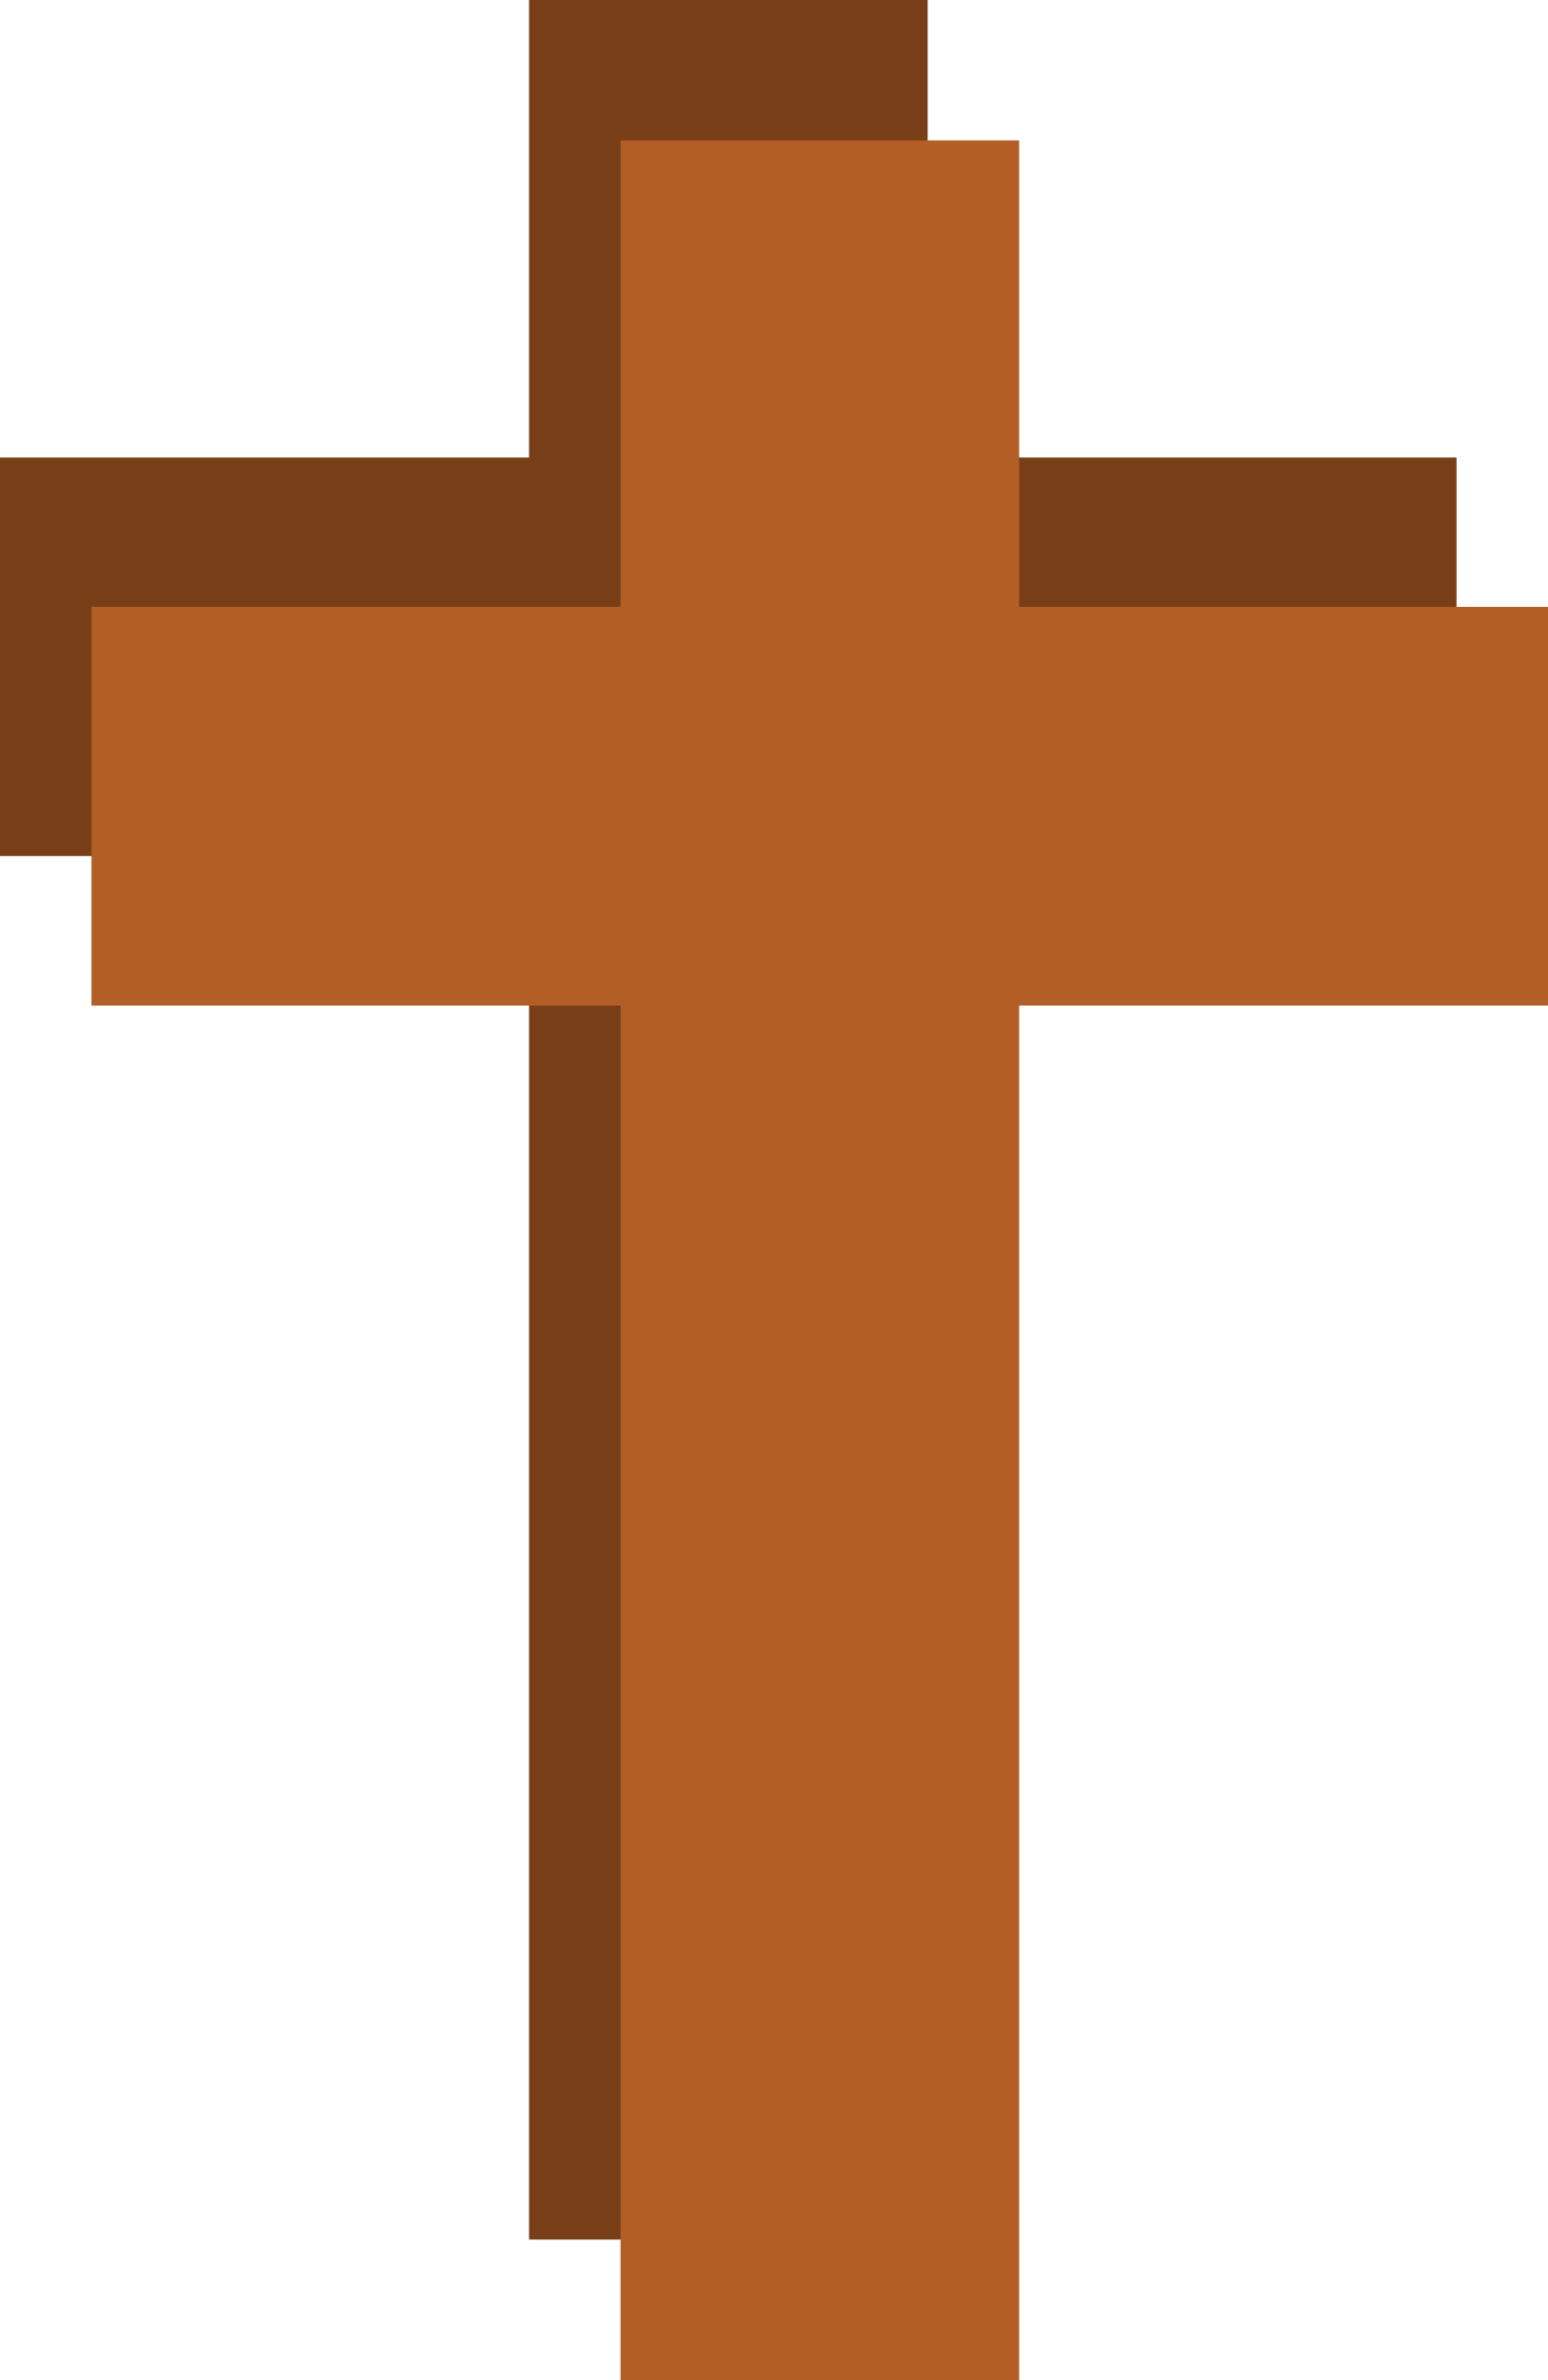 Clipart christian cross clipart library stock Clipart - Stylized Christian Cross clipart library stock